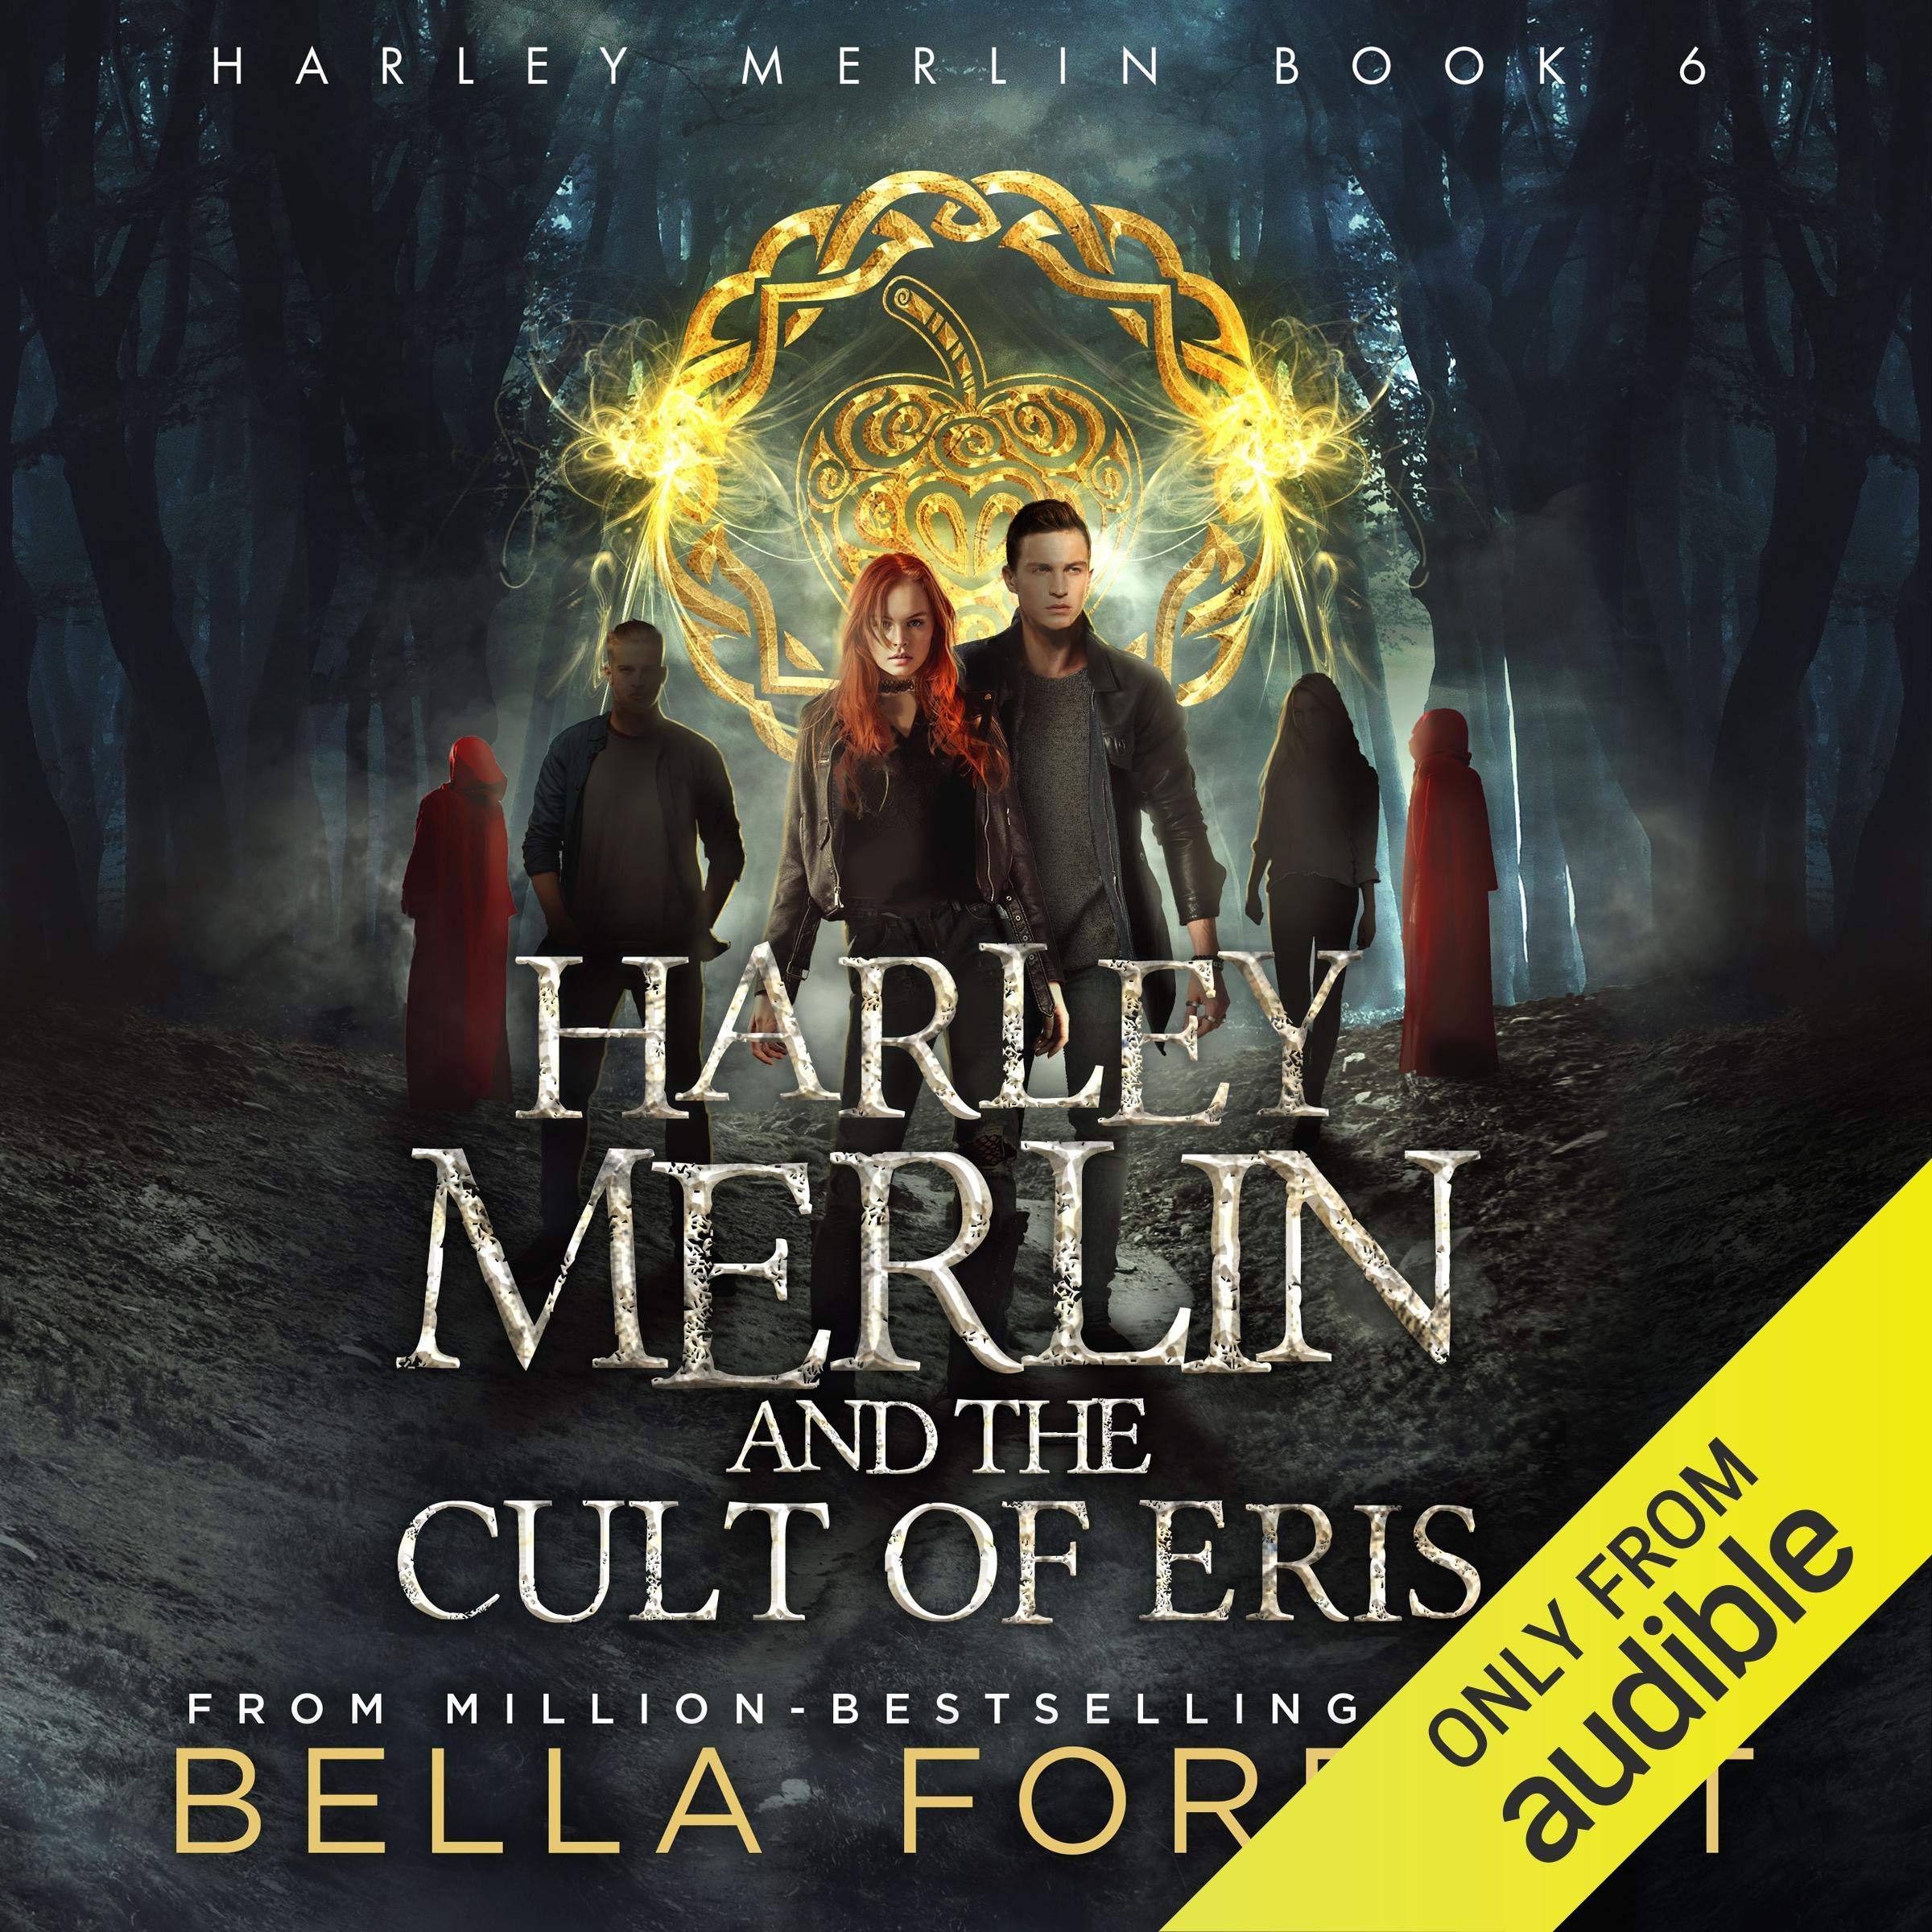 Download Harley Merlin and the Cult of Eris: Harley Merlin, Book 6 by Bella Forrest